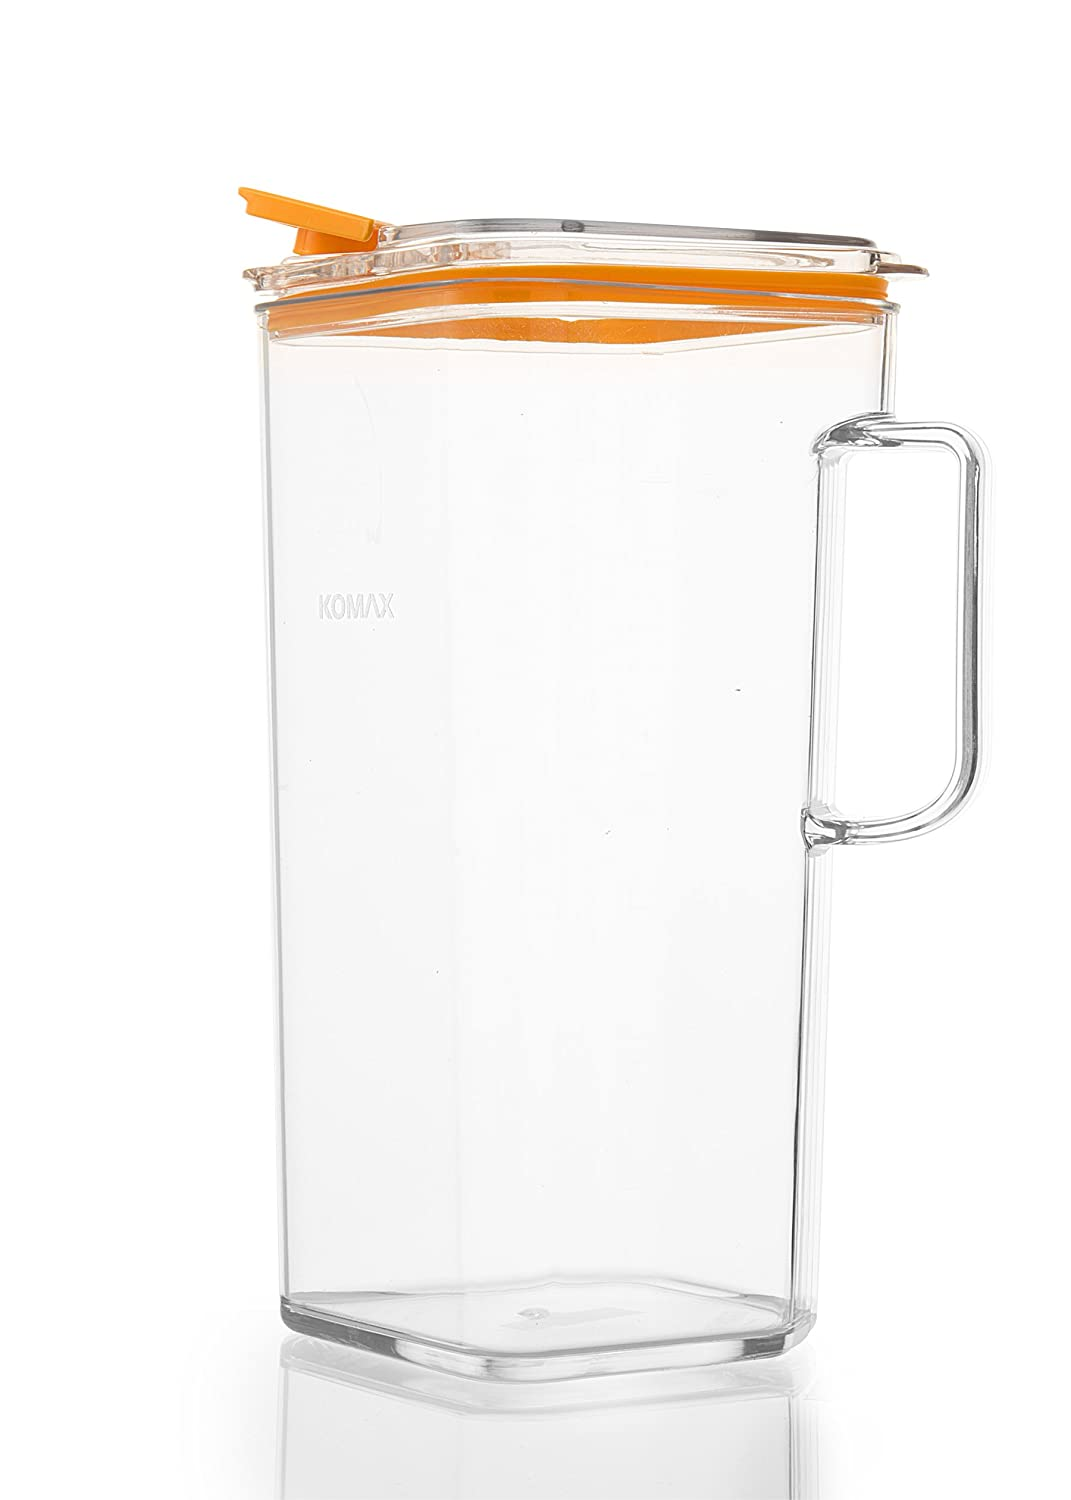 Komax Tritan Plastic Pitcher With Lid | 60-oz (1.8-quart) Water Pitcher With Orange Lid | Compact Water, Tea, Lemonade, Milk, Sangria Pitcher | Space Saving Water Pitcher | BPA-Free Plastic Carafe